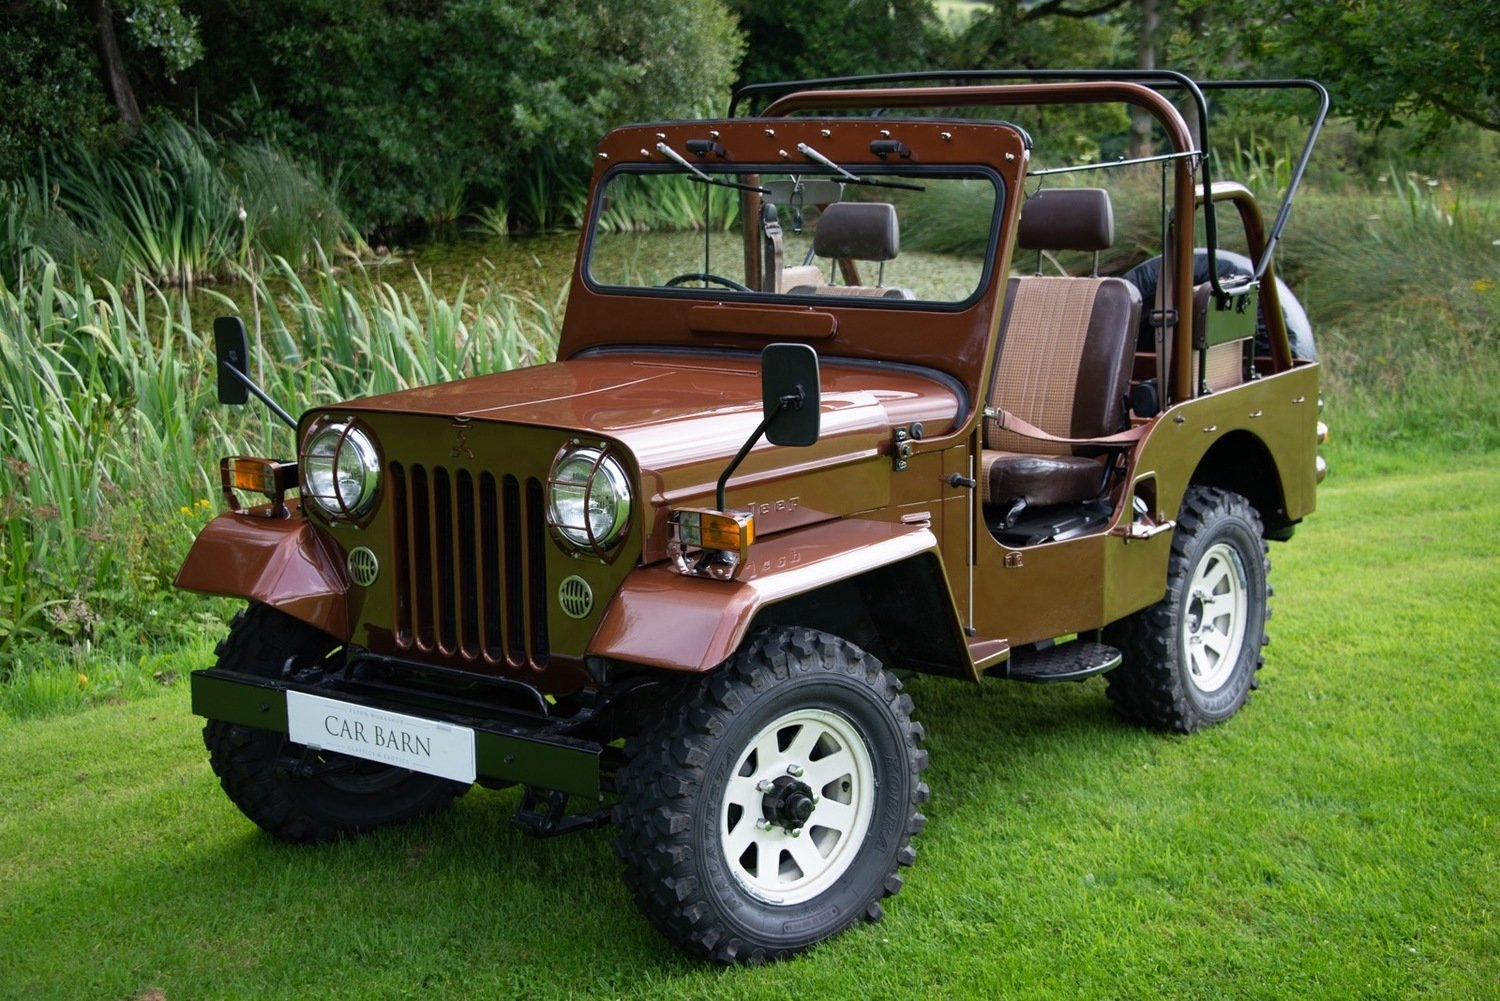 1980 Mitsibishi Jeep Wiley J58 Soft Top (SWB) For Sale (picture 1 of 6)